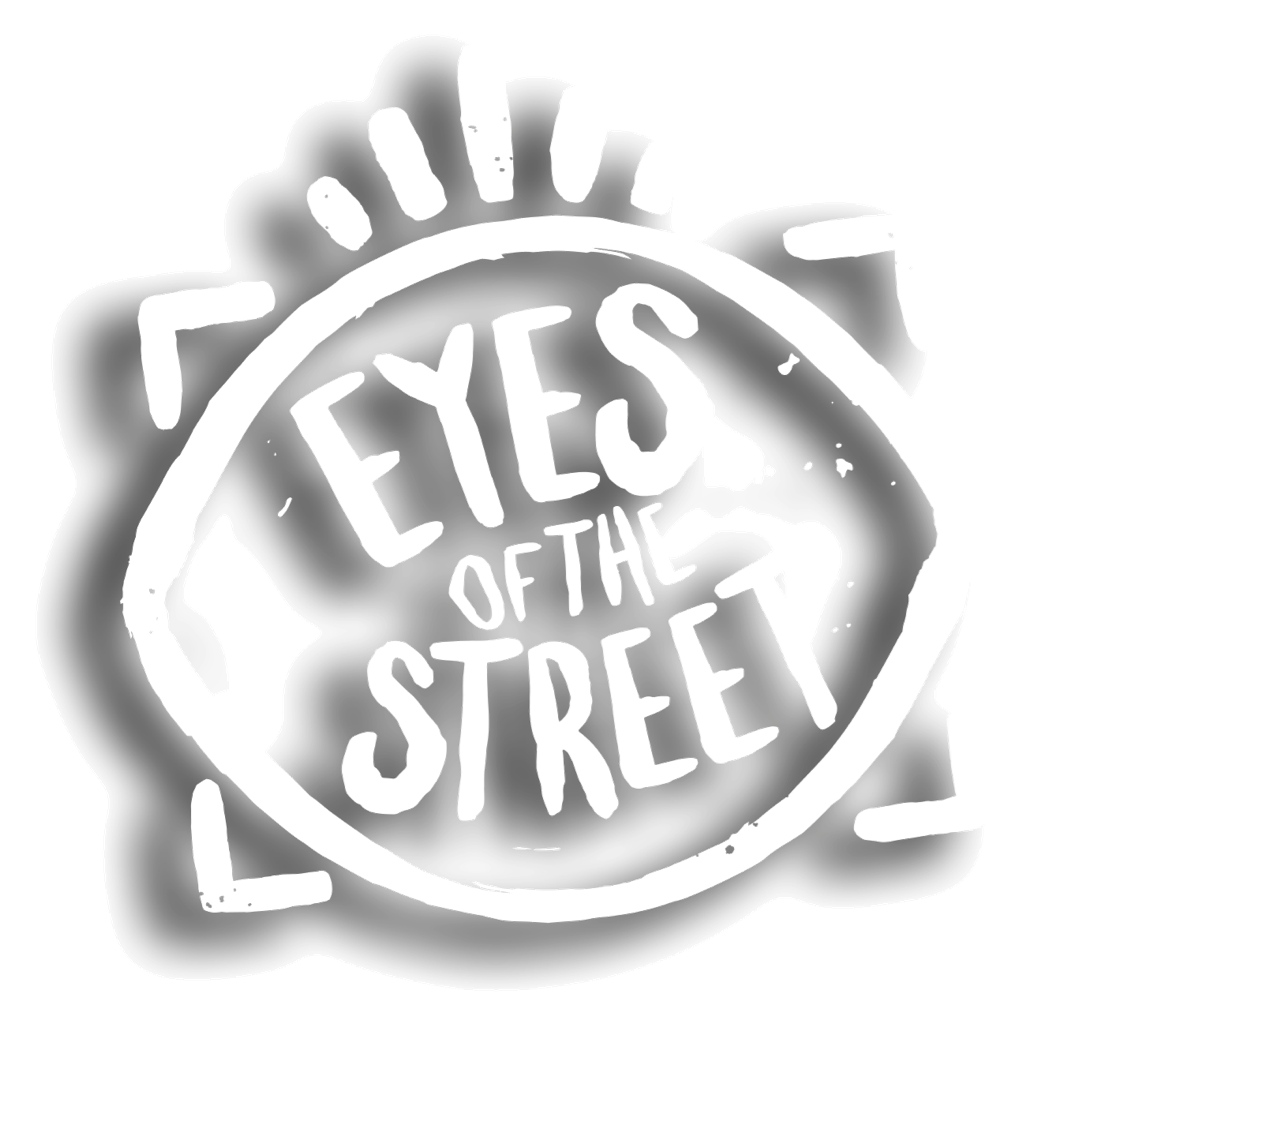 Eyes of the Street